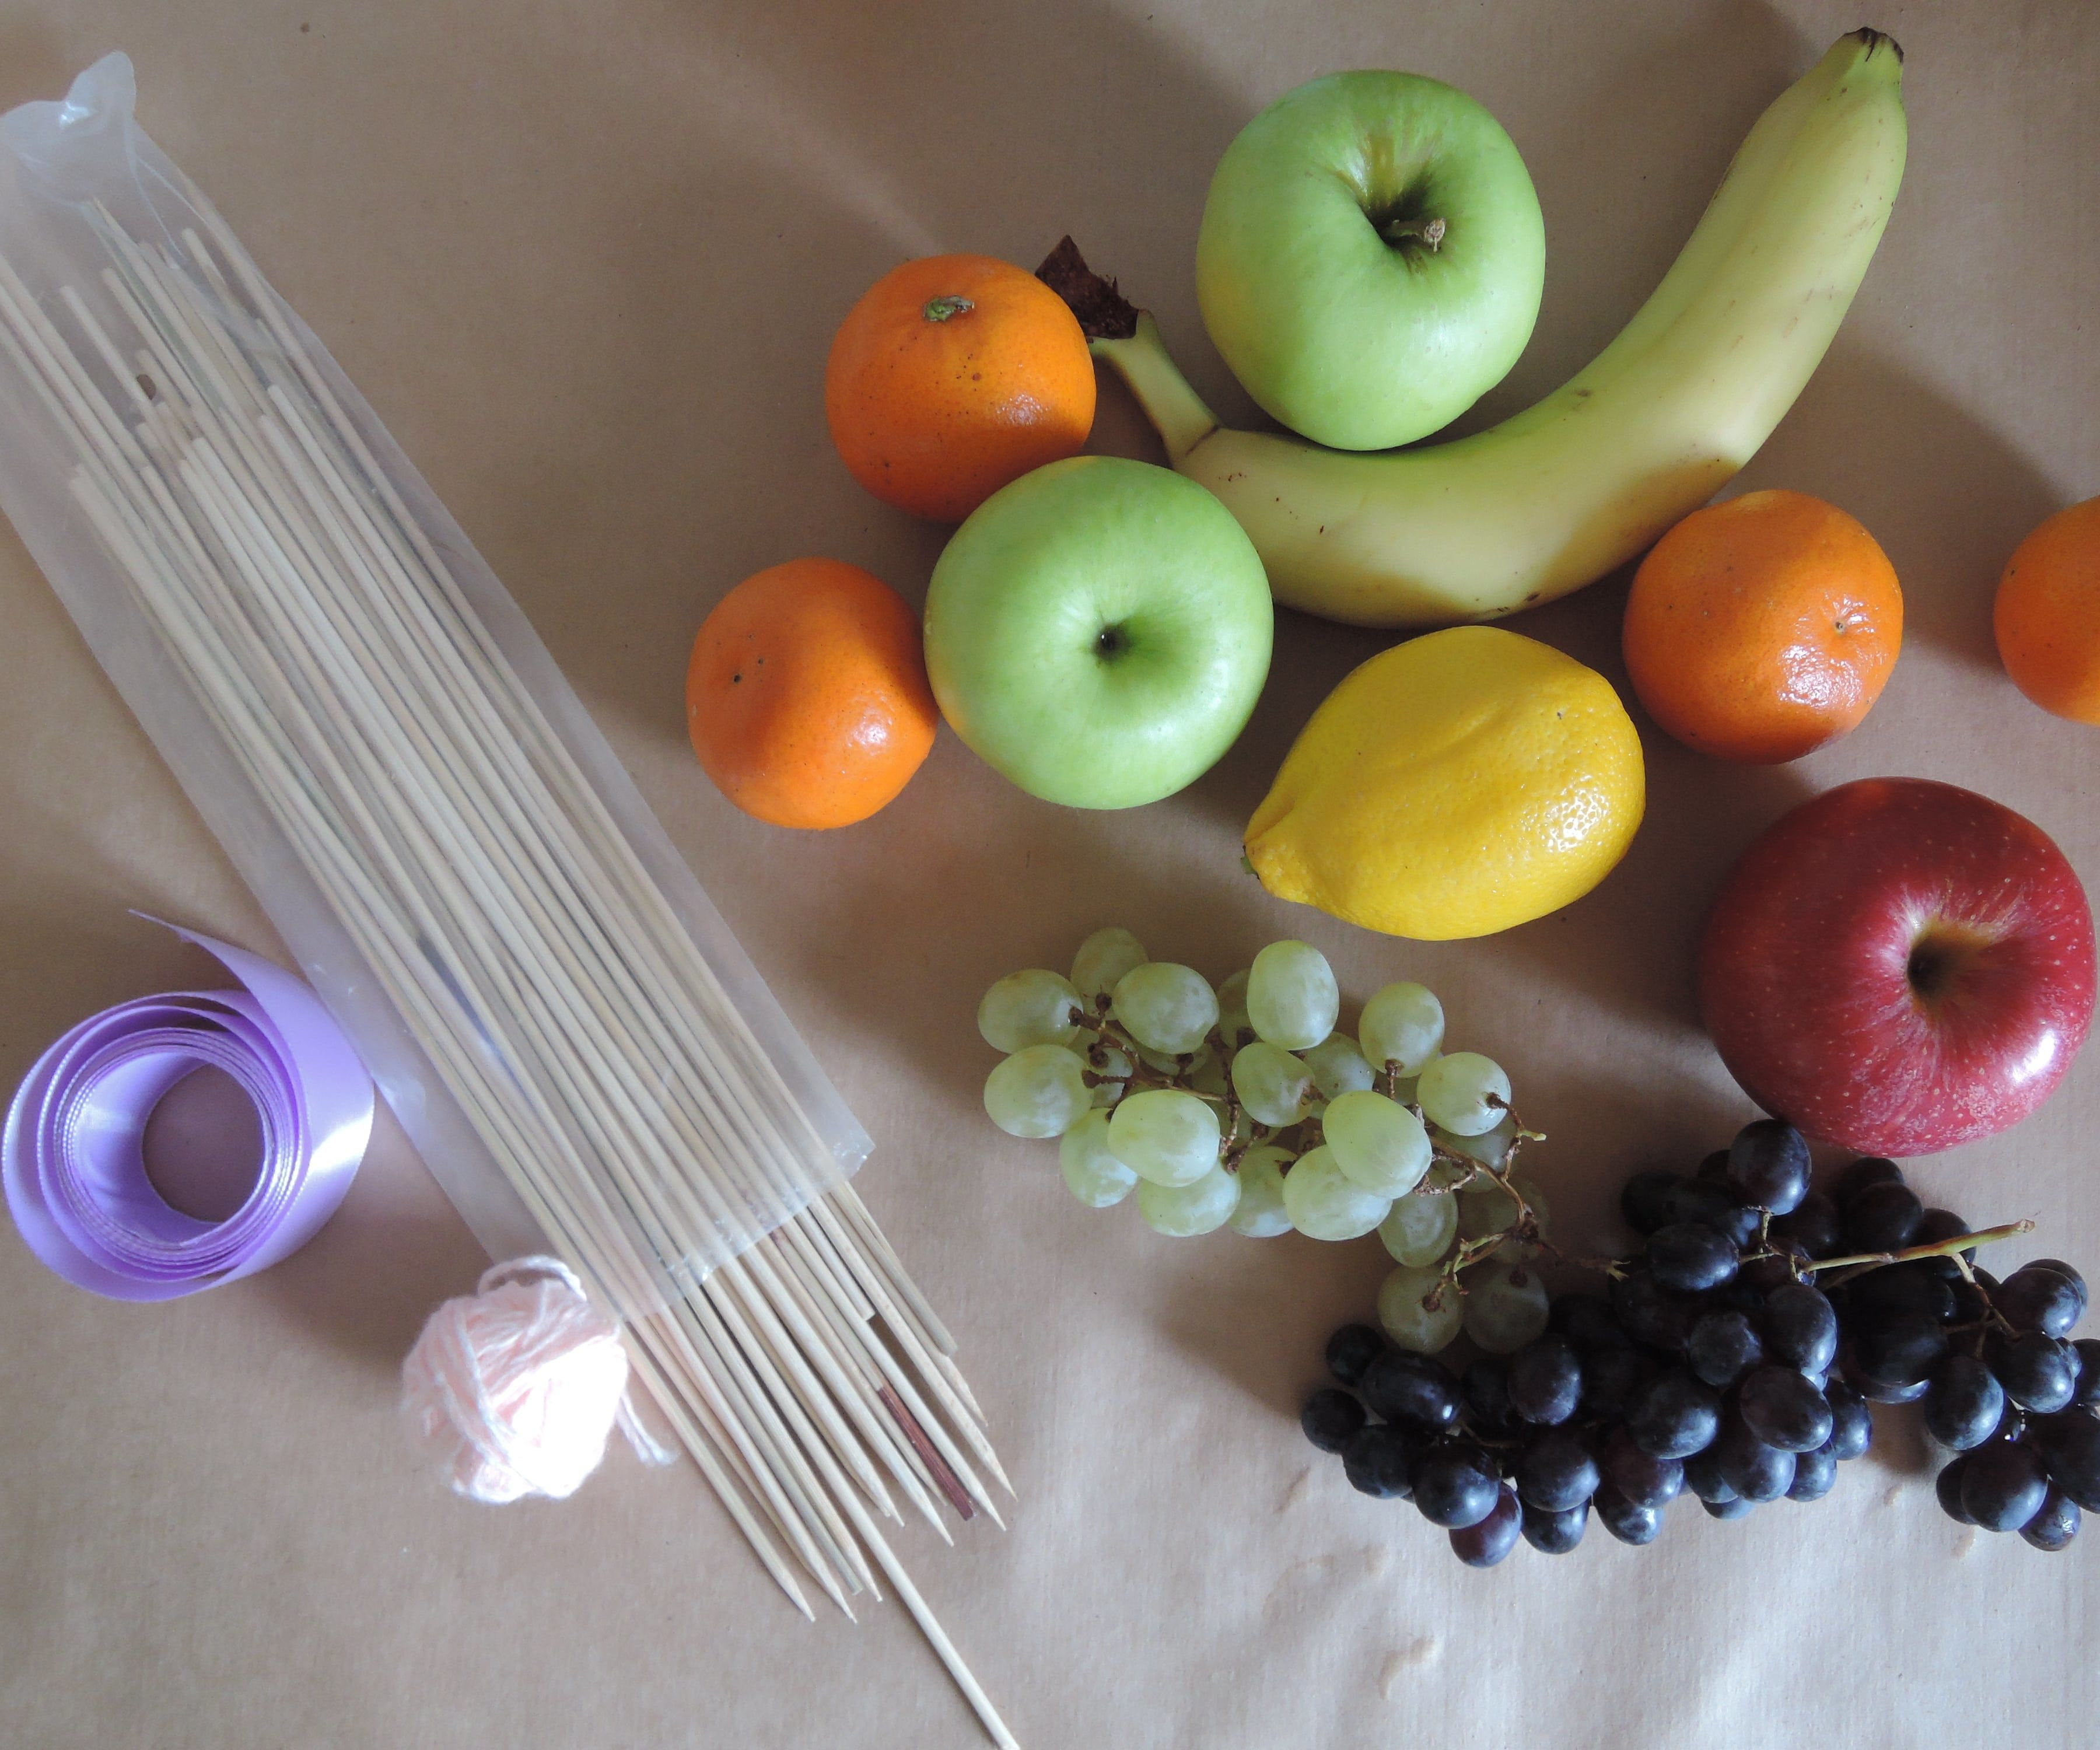 How to Make a Bouquet of Fruits: a Step-by-step Guide